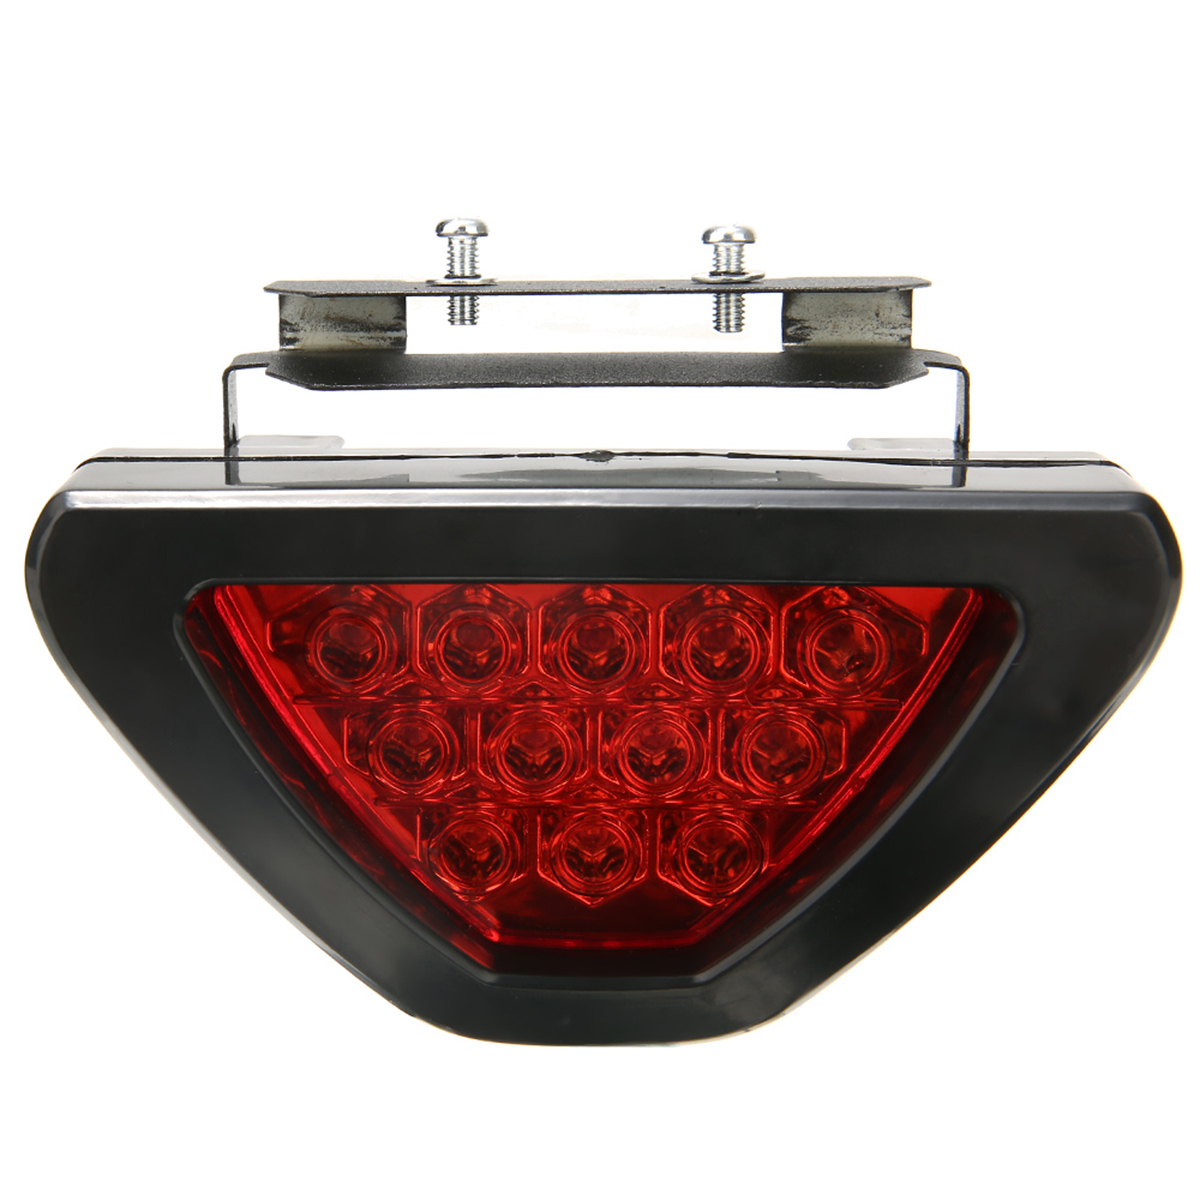 Image 1 - For Car Truck Brake Lights Universal F1 Style 12 LED Red Rear Tail Third Brake Stop Light Safety Signal Lamp-in Signal Lamp from Automobiles & Motorcycles